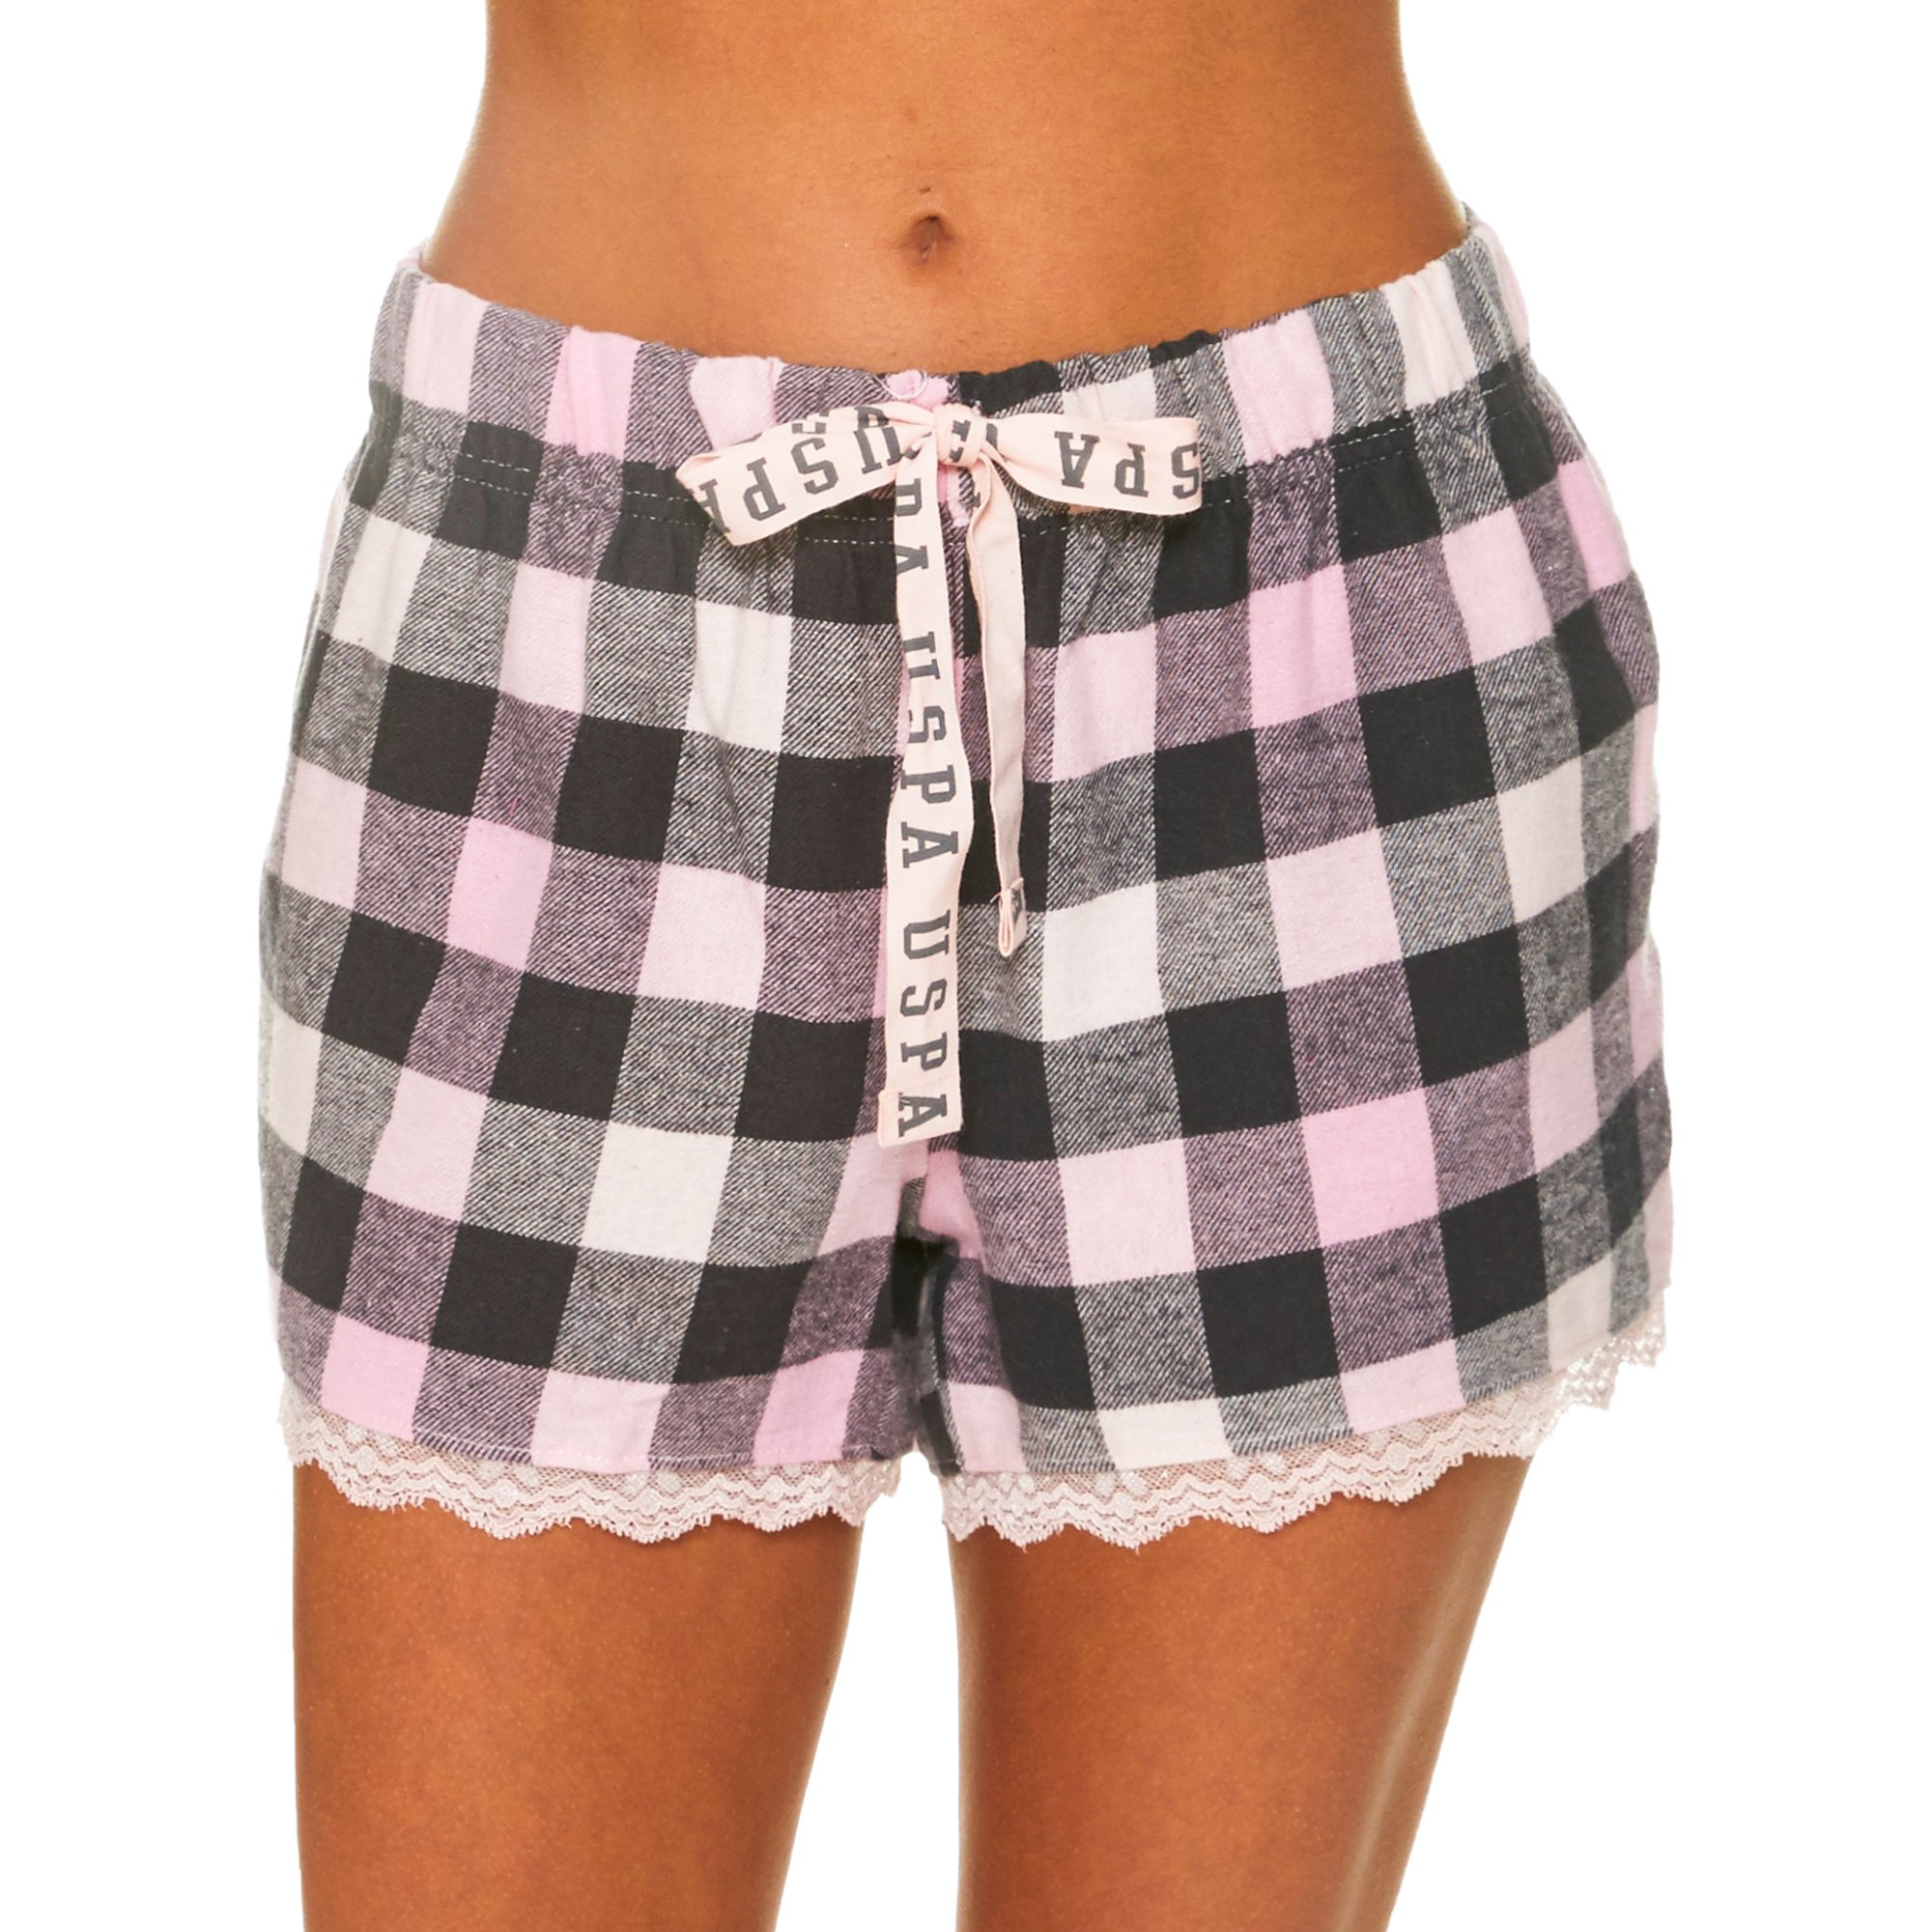 U.S. Polo Assn.. Womens Plaid Flannel Pajama Lounge Shorts with Lace Trim Pink Medium